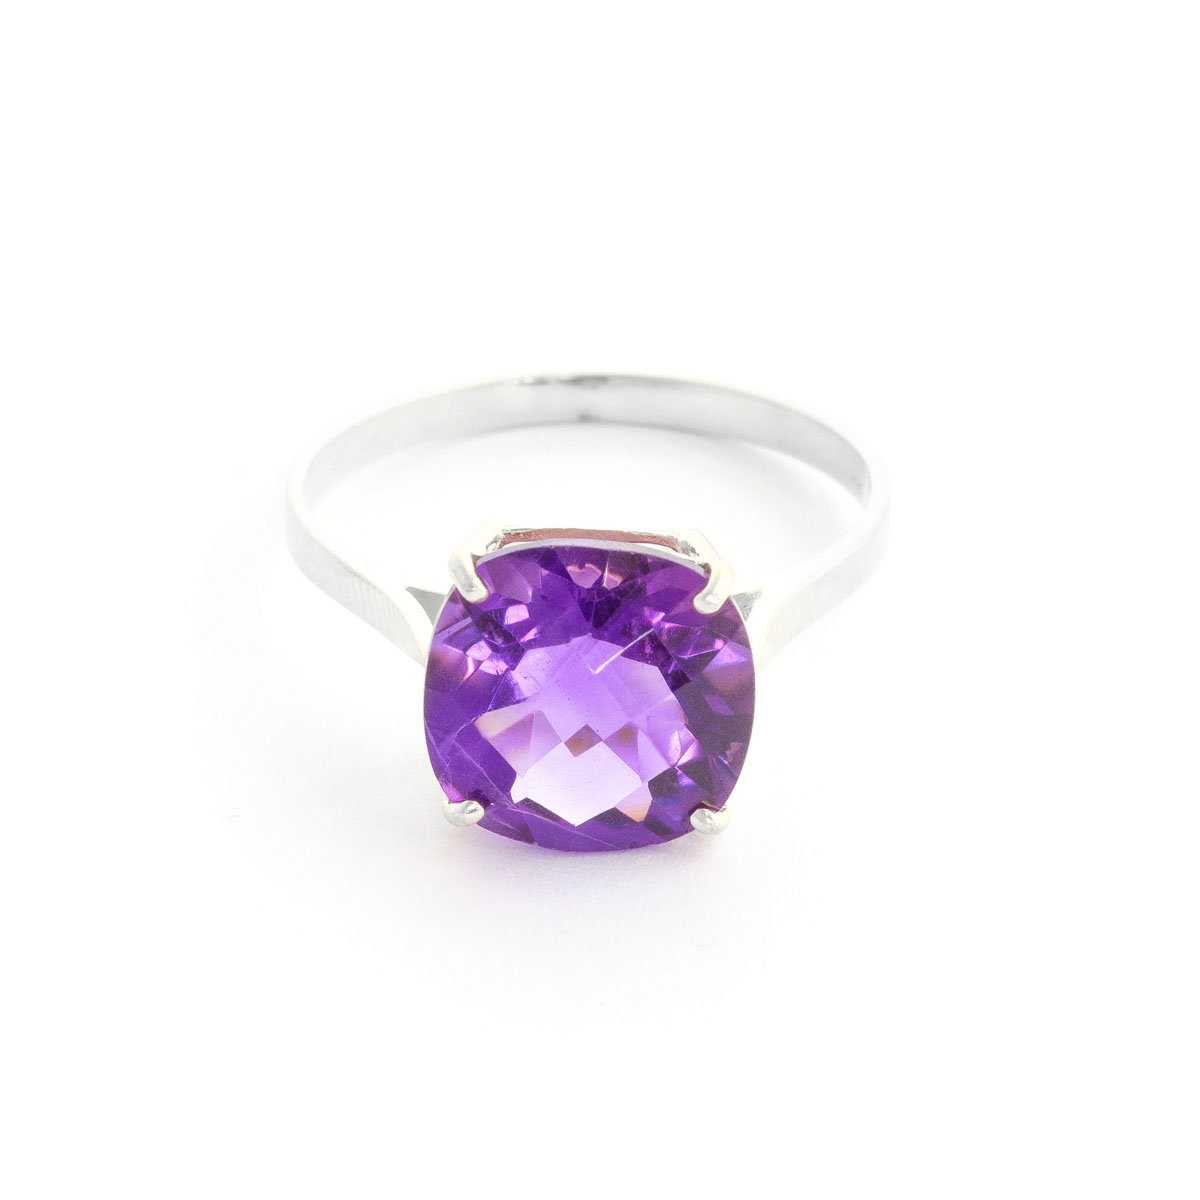 Amethyst Rococo Ring 3.6 ct in 9ct White Gold